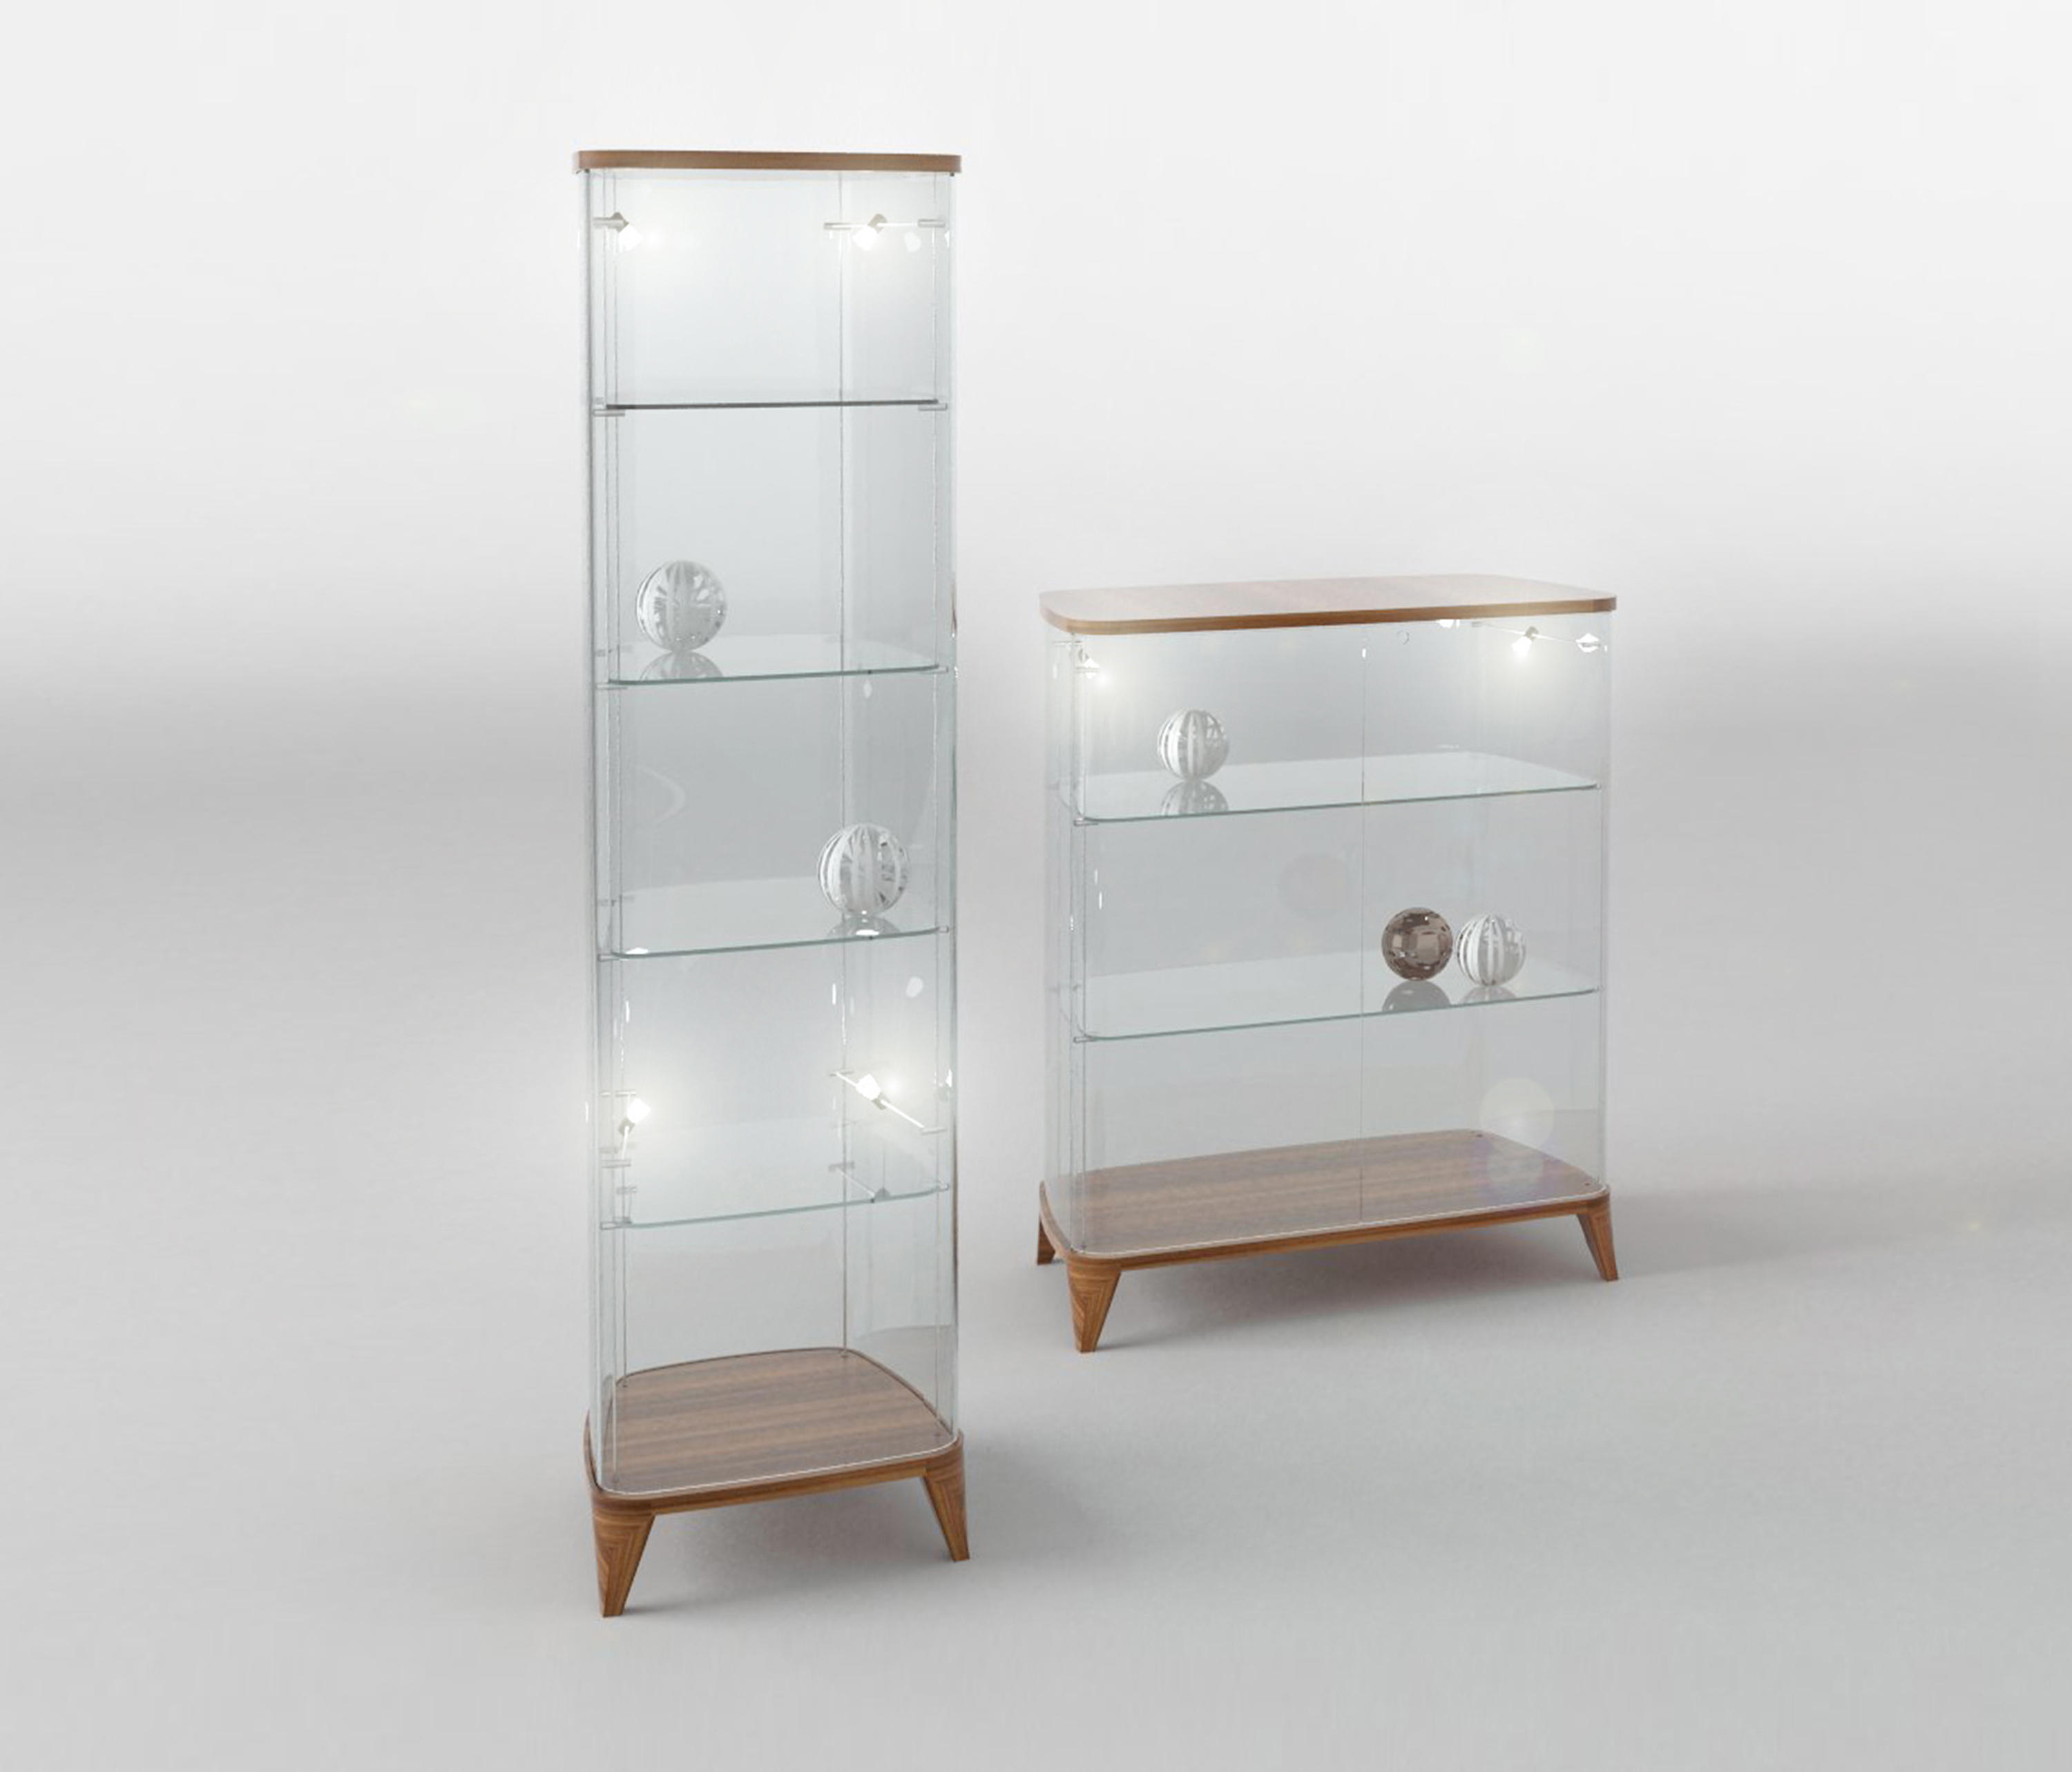 seventy vitrine display cabinets from reflex architonic. Black Bedroom Furniture Sets. Home Design Ideas